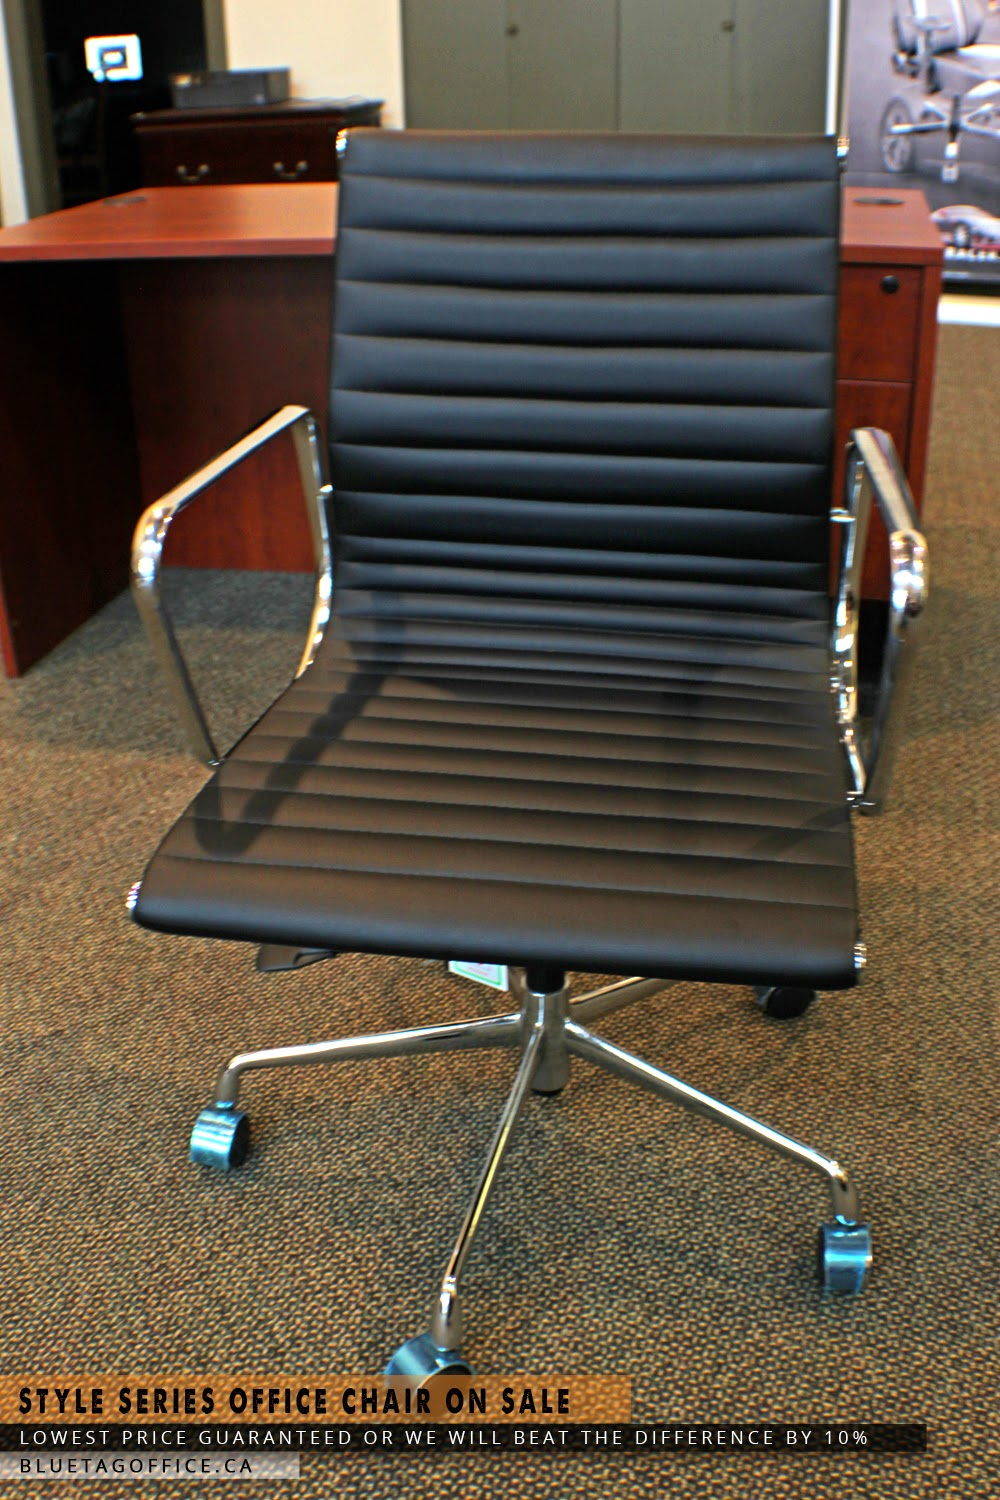 Office Chair on Sale in Canada April 2015